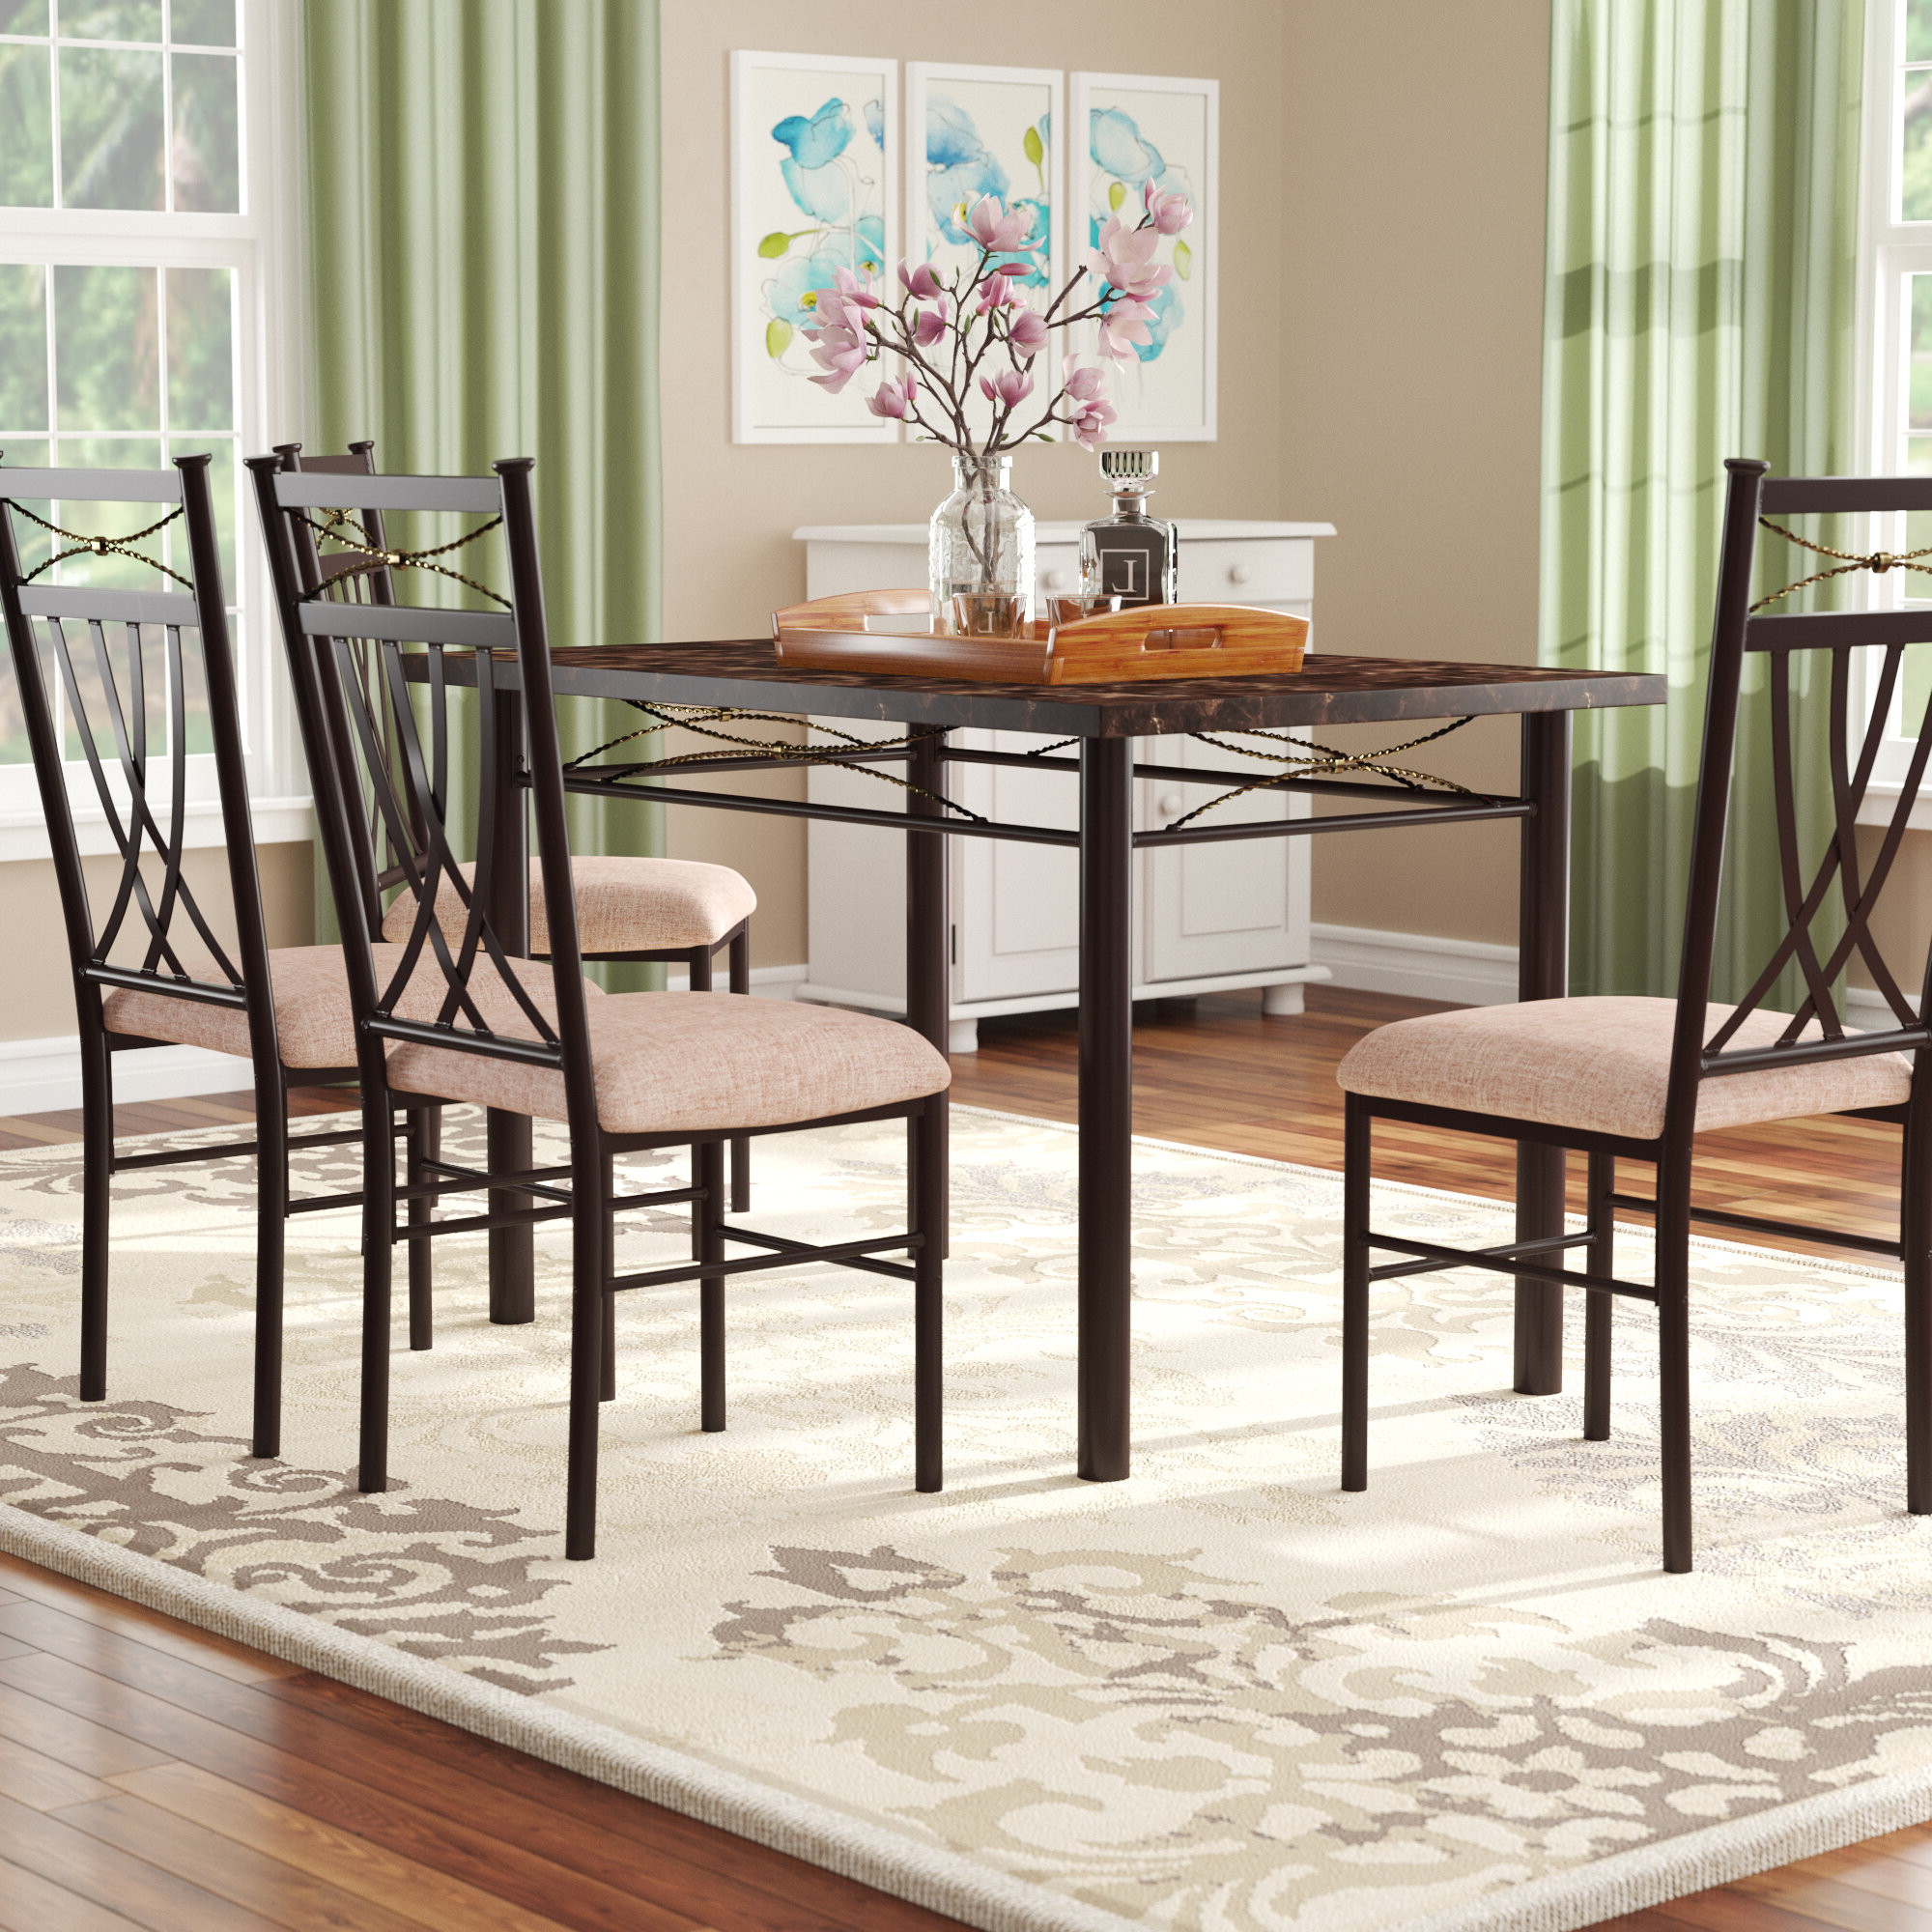 Well Liked Red Barrel Studio Branden 5 Piece Dining Set & Reviews (View 3 of 25)